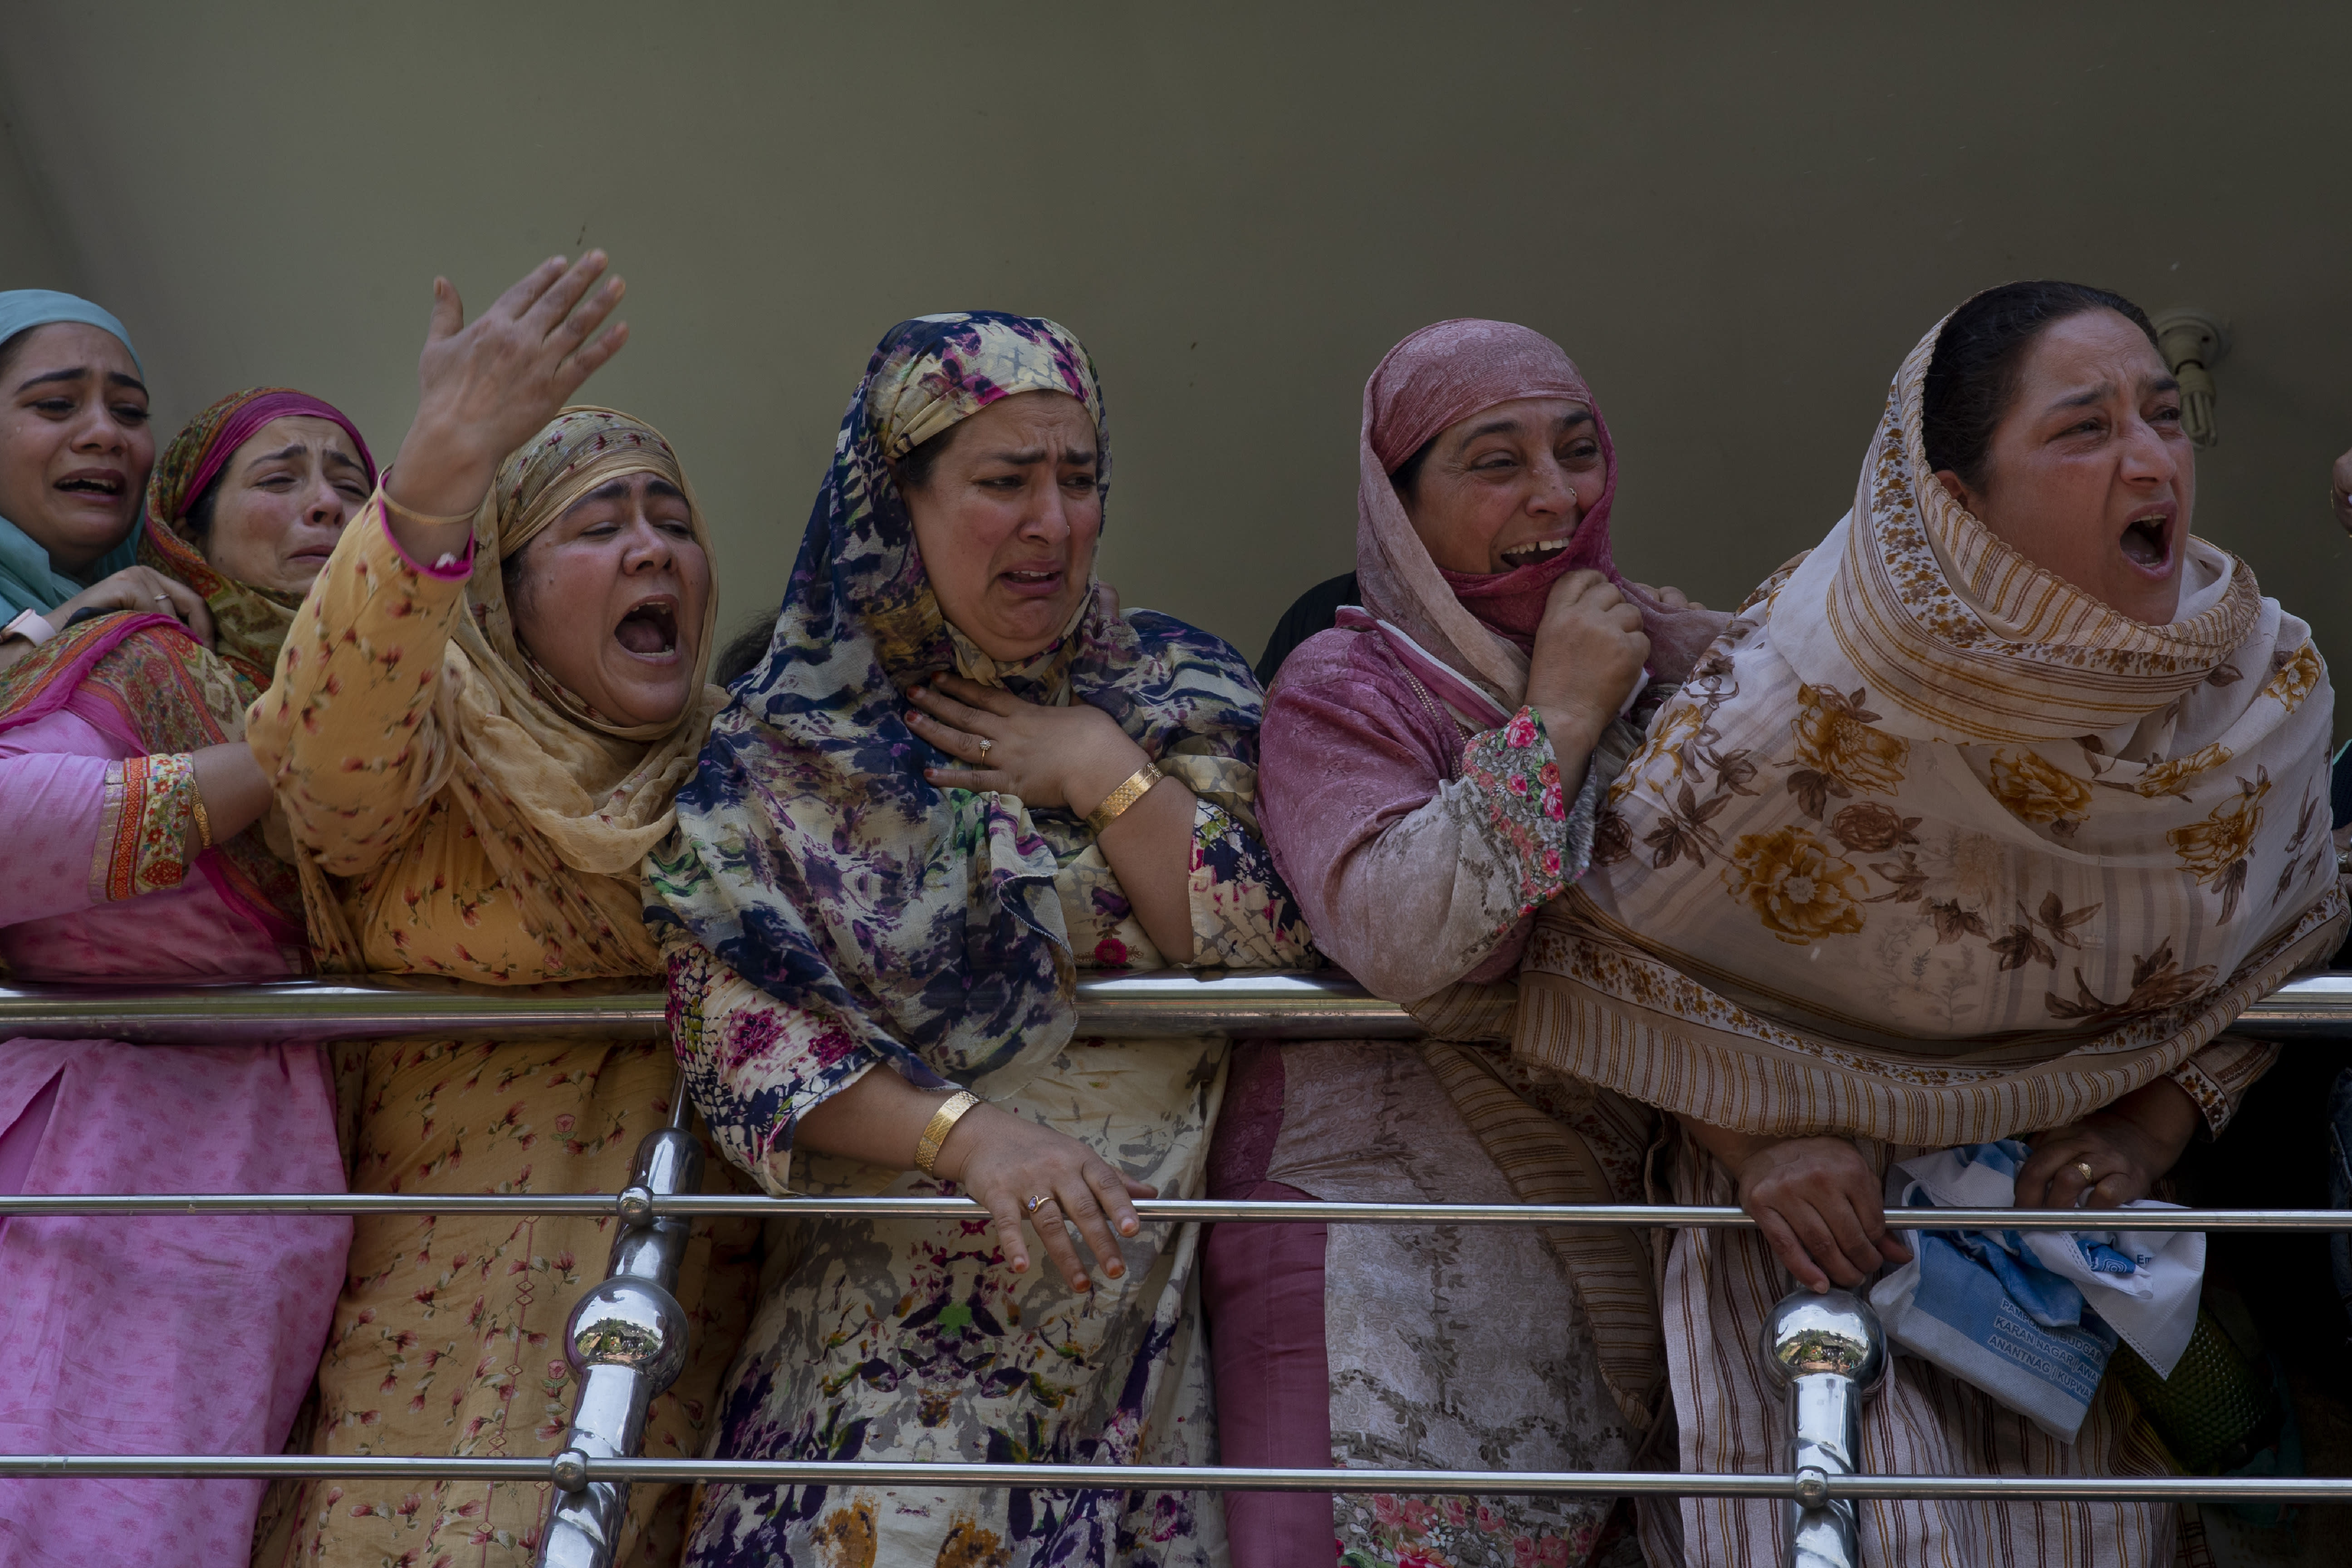 Relatives of Kashmiri civilian Bashir Ahmed Khan grieve as they watch his funeral on the outskirts of Srinagar, Indian controlled Kashmir, Wednesday, July 1, 2020. Suspected rebels attacked paramilitary soldiers in the Indian portion of Kashmir, killing Khan and a paramilitary soldier, according to government sources. The family refutes the claim. (AP Photo/ Dar Yasin)